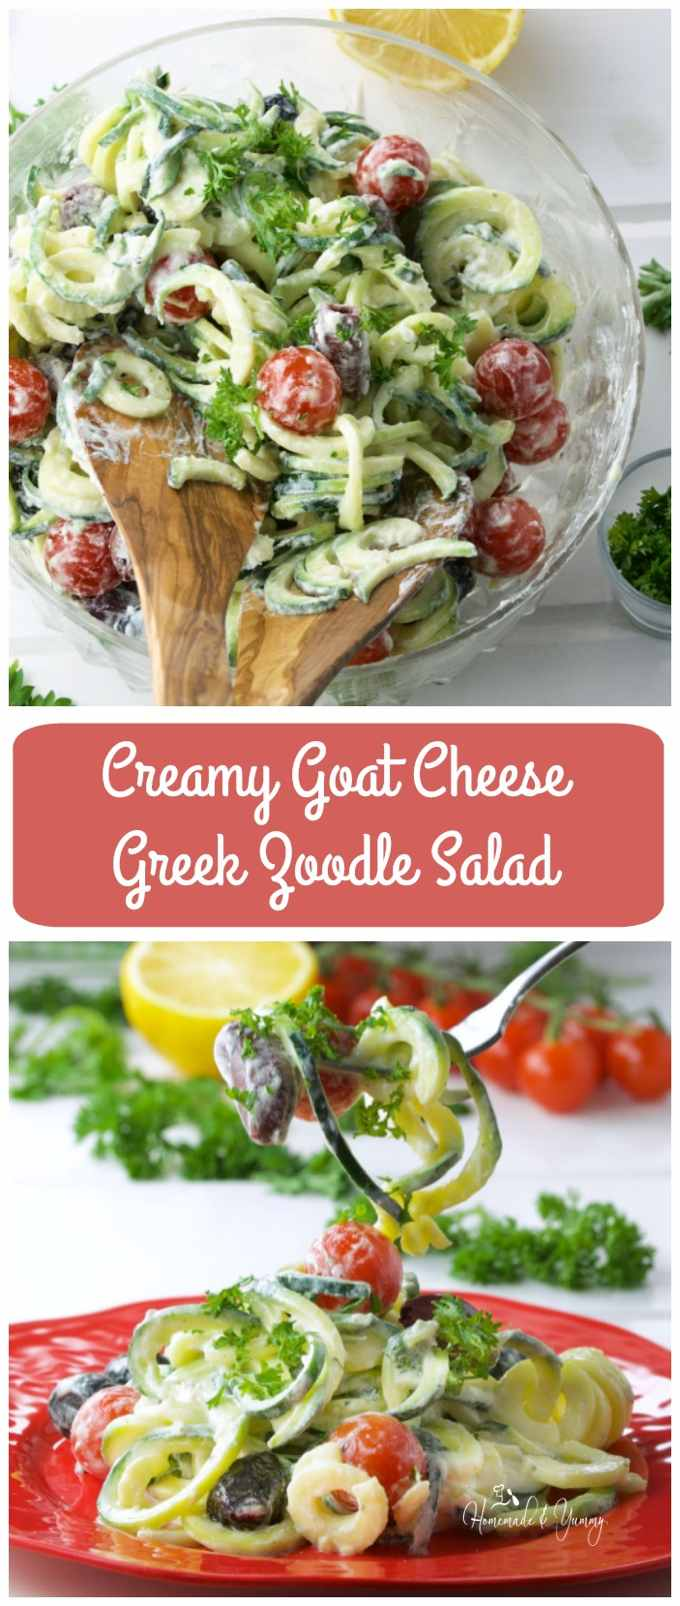 Creamy Goat Cheese Greek Zoodle Salad long pin image.